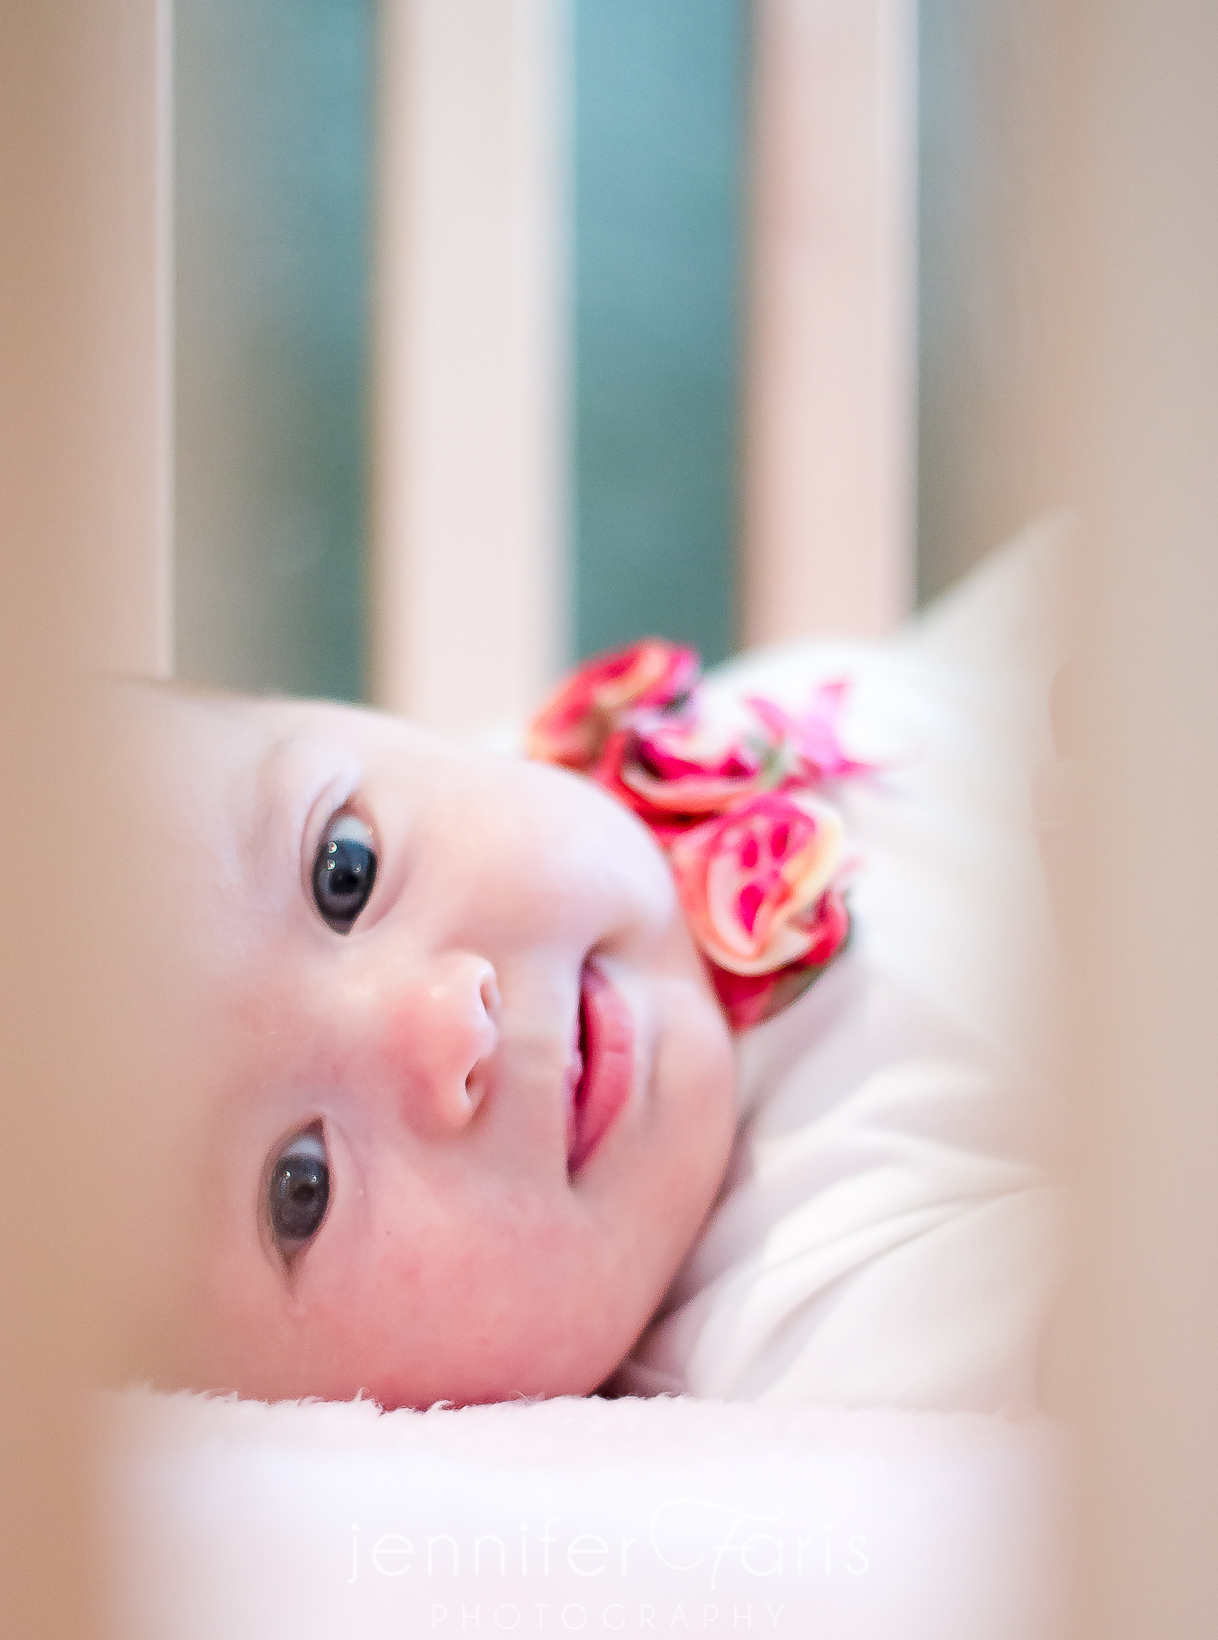 Raelynn – 8 weeks old